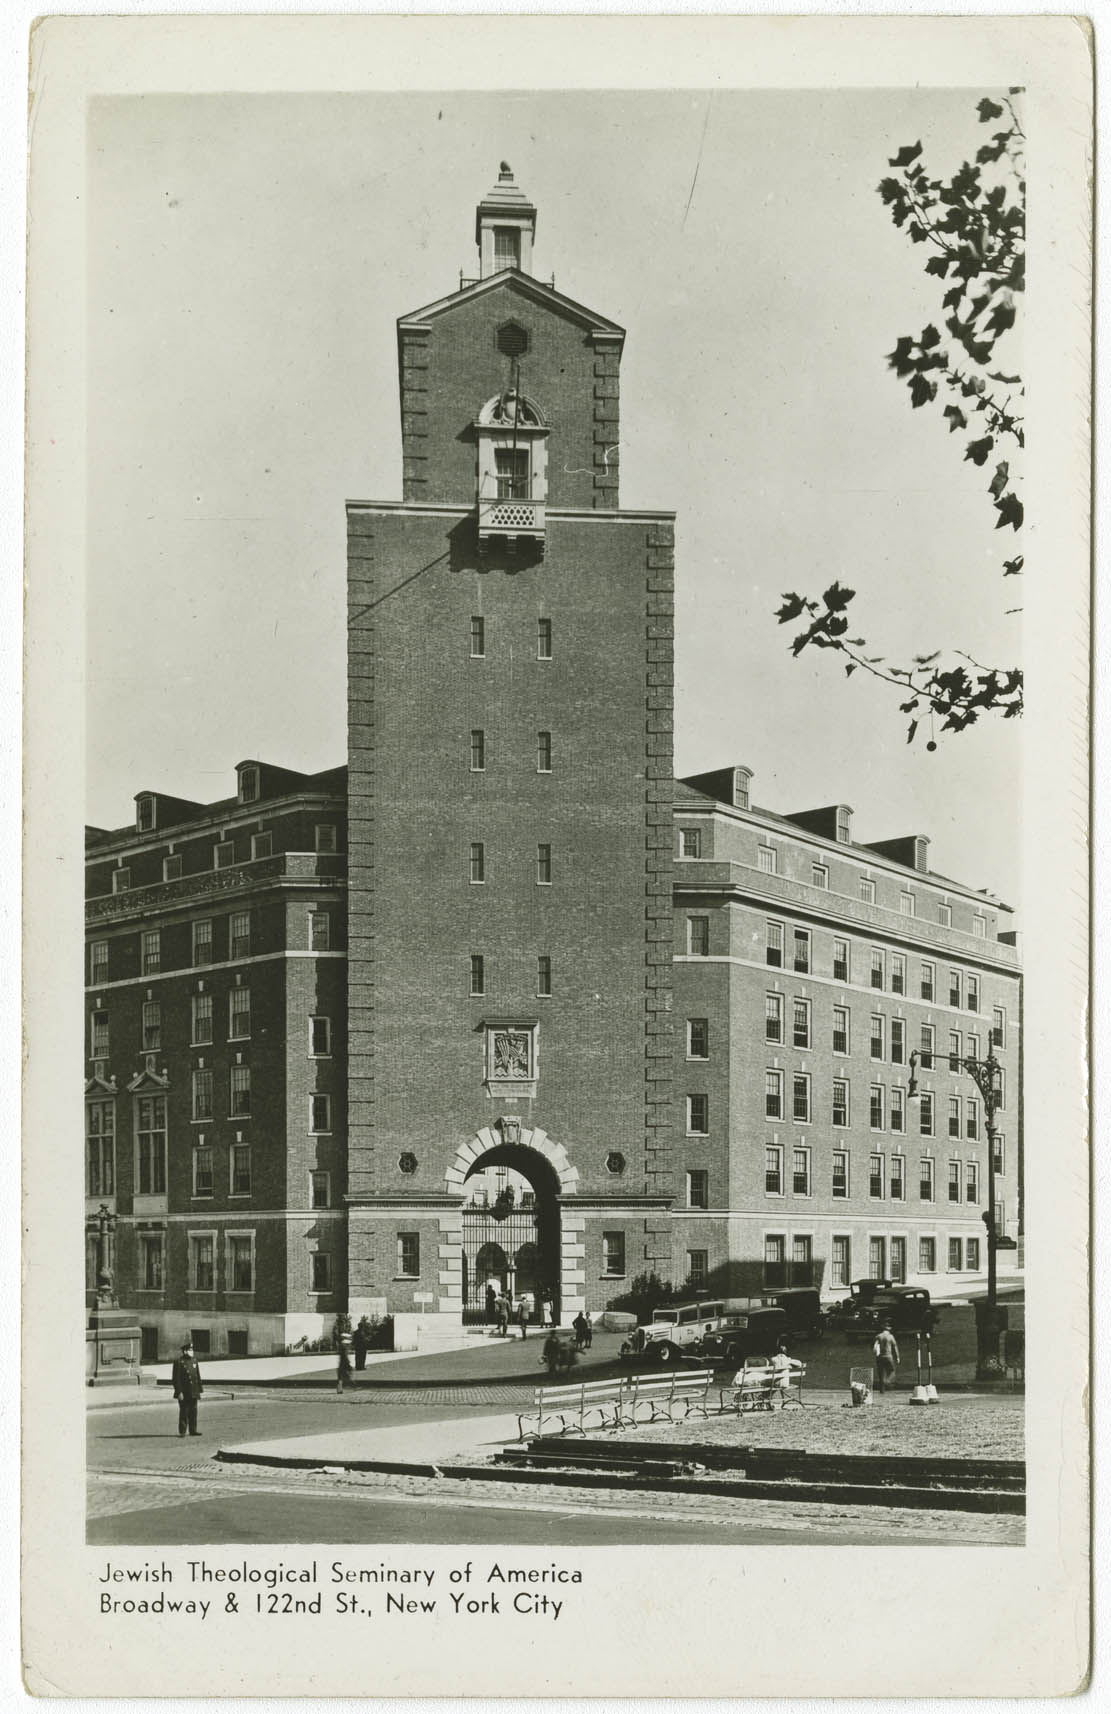 Jewish Theological Seminary of America. Broadway & 122nd St., New York City